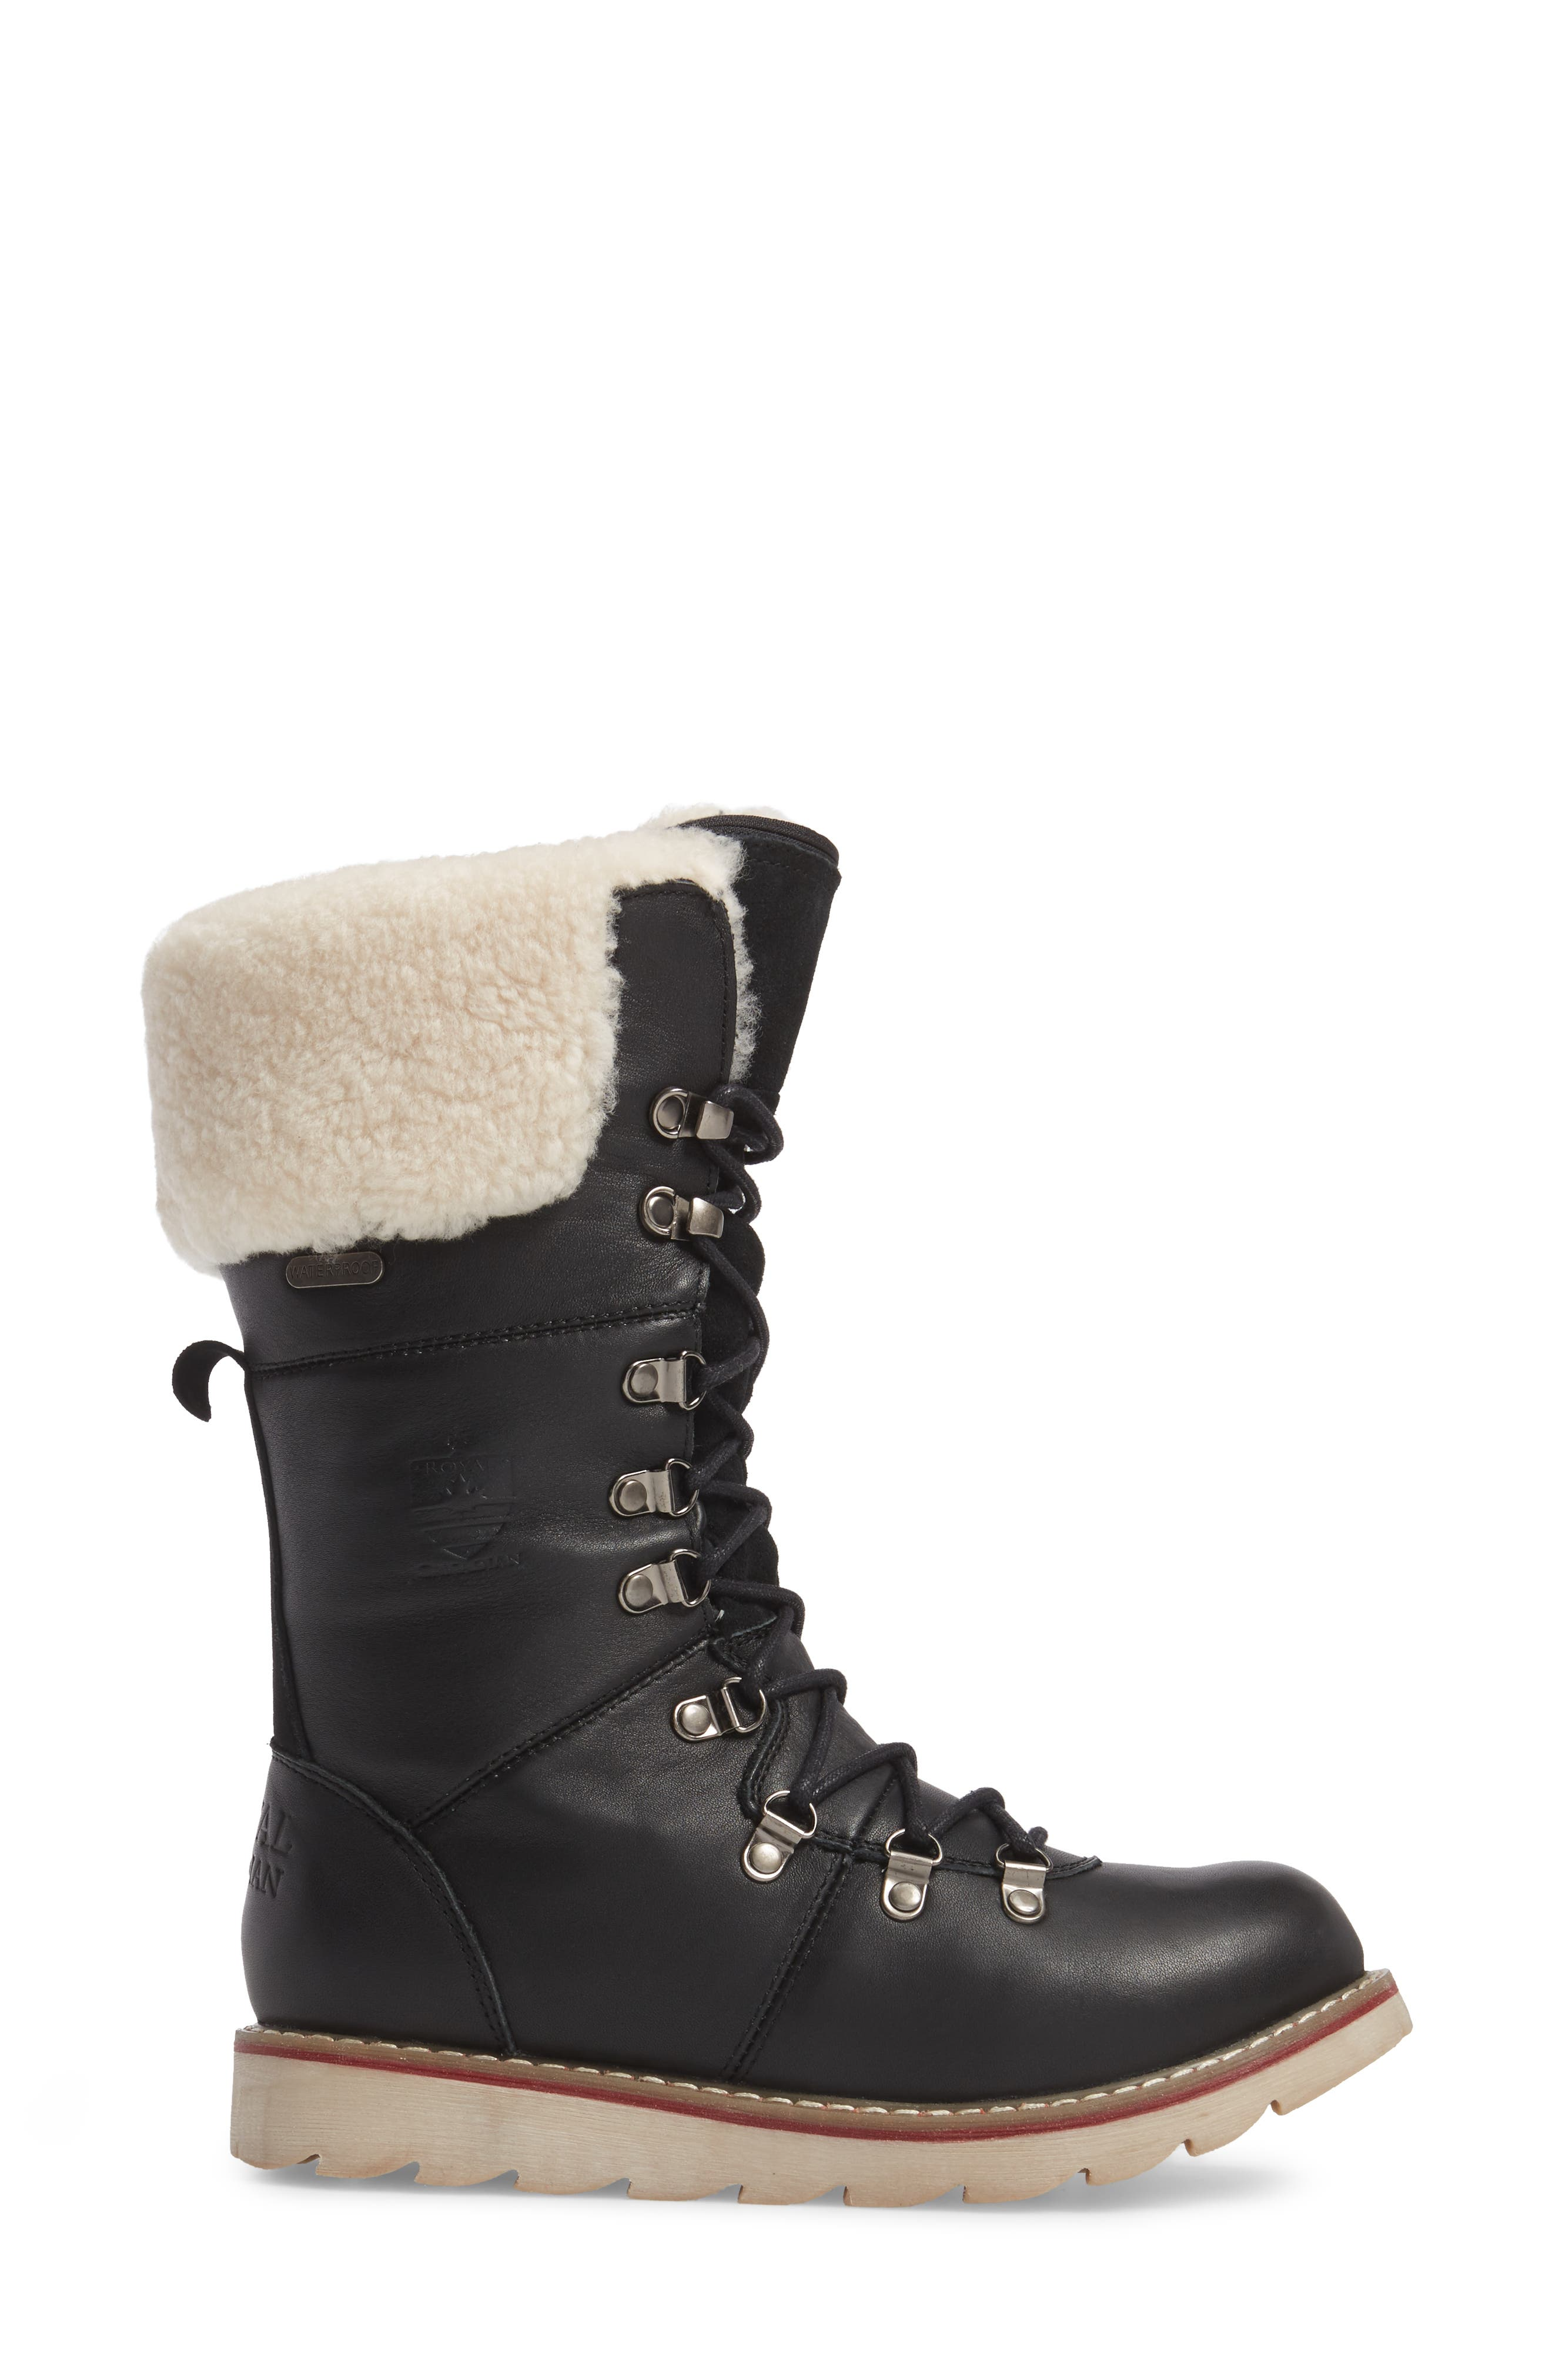 Louise Waterproof Snow Boot with Genuine Shearling Cuff,                             Alternate thumbnail 3, color,                             001